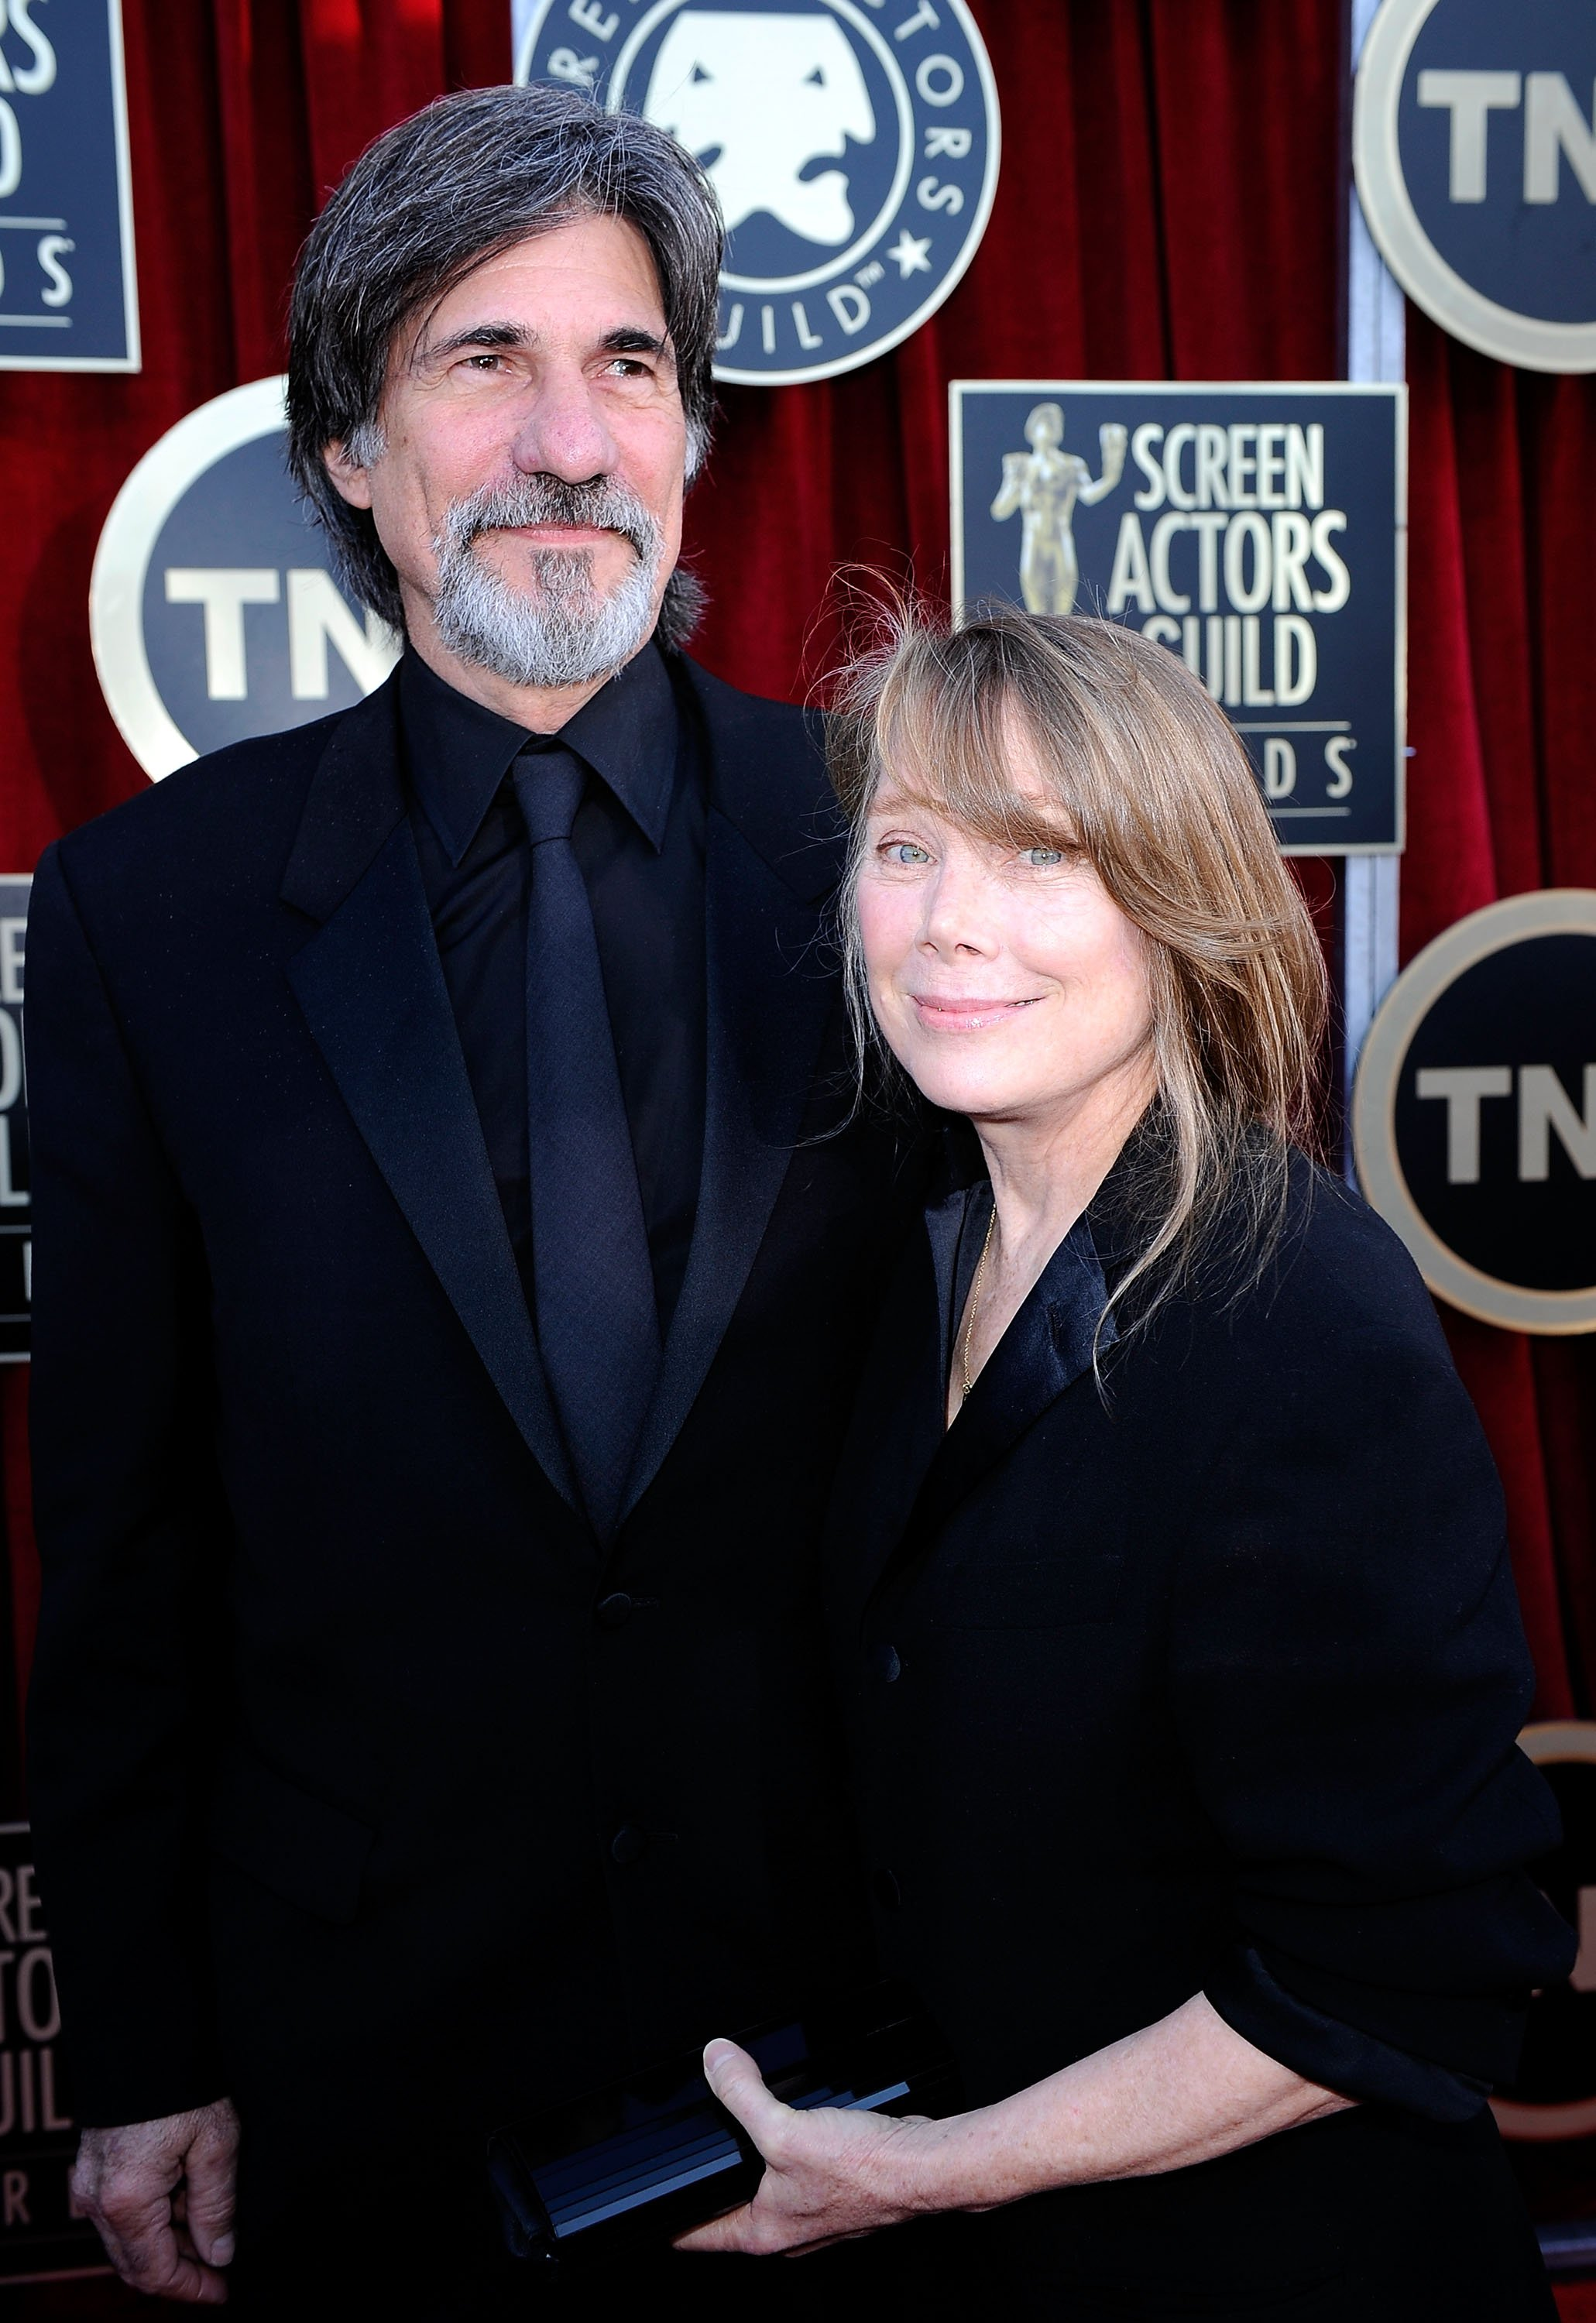 Sissy Spacek and Jack Fisk at The Shrine Auditorium on January 29, 2012, in Los Angeles, California. | Photo: Getty Images